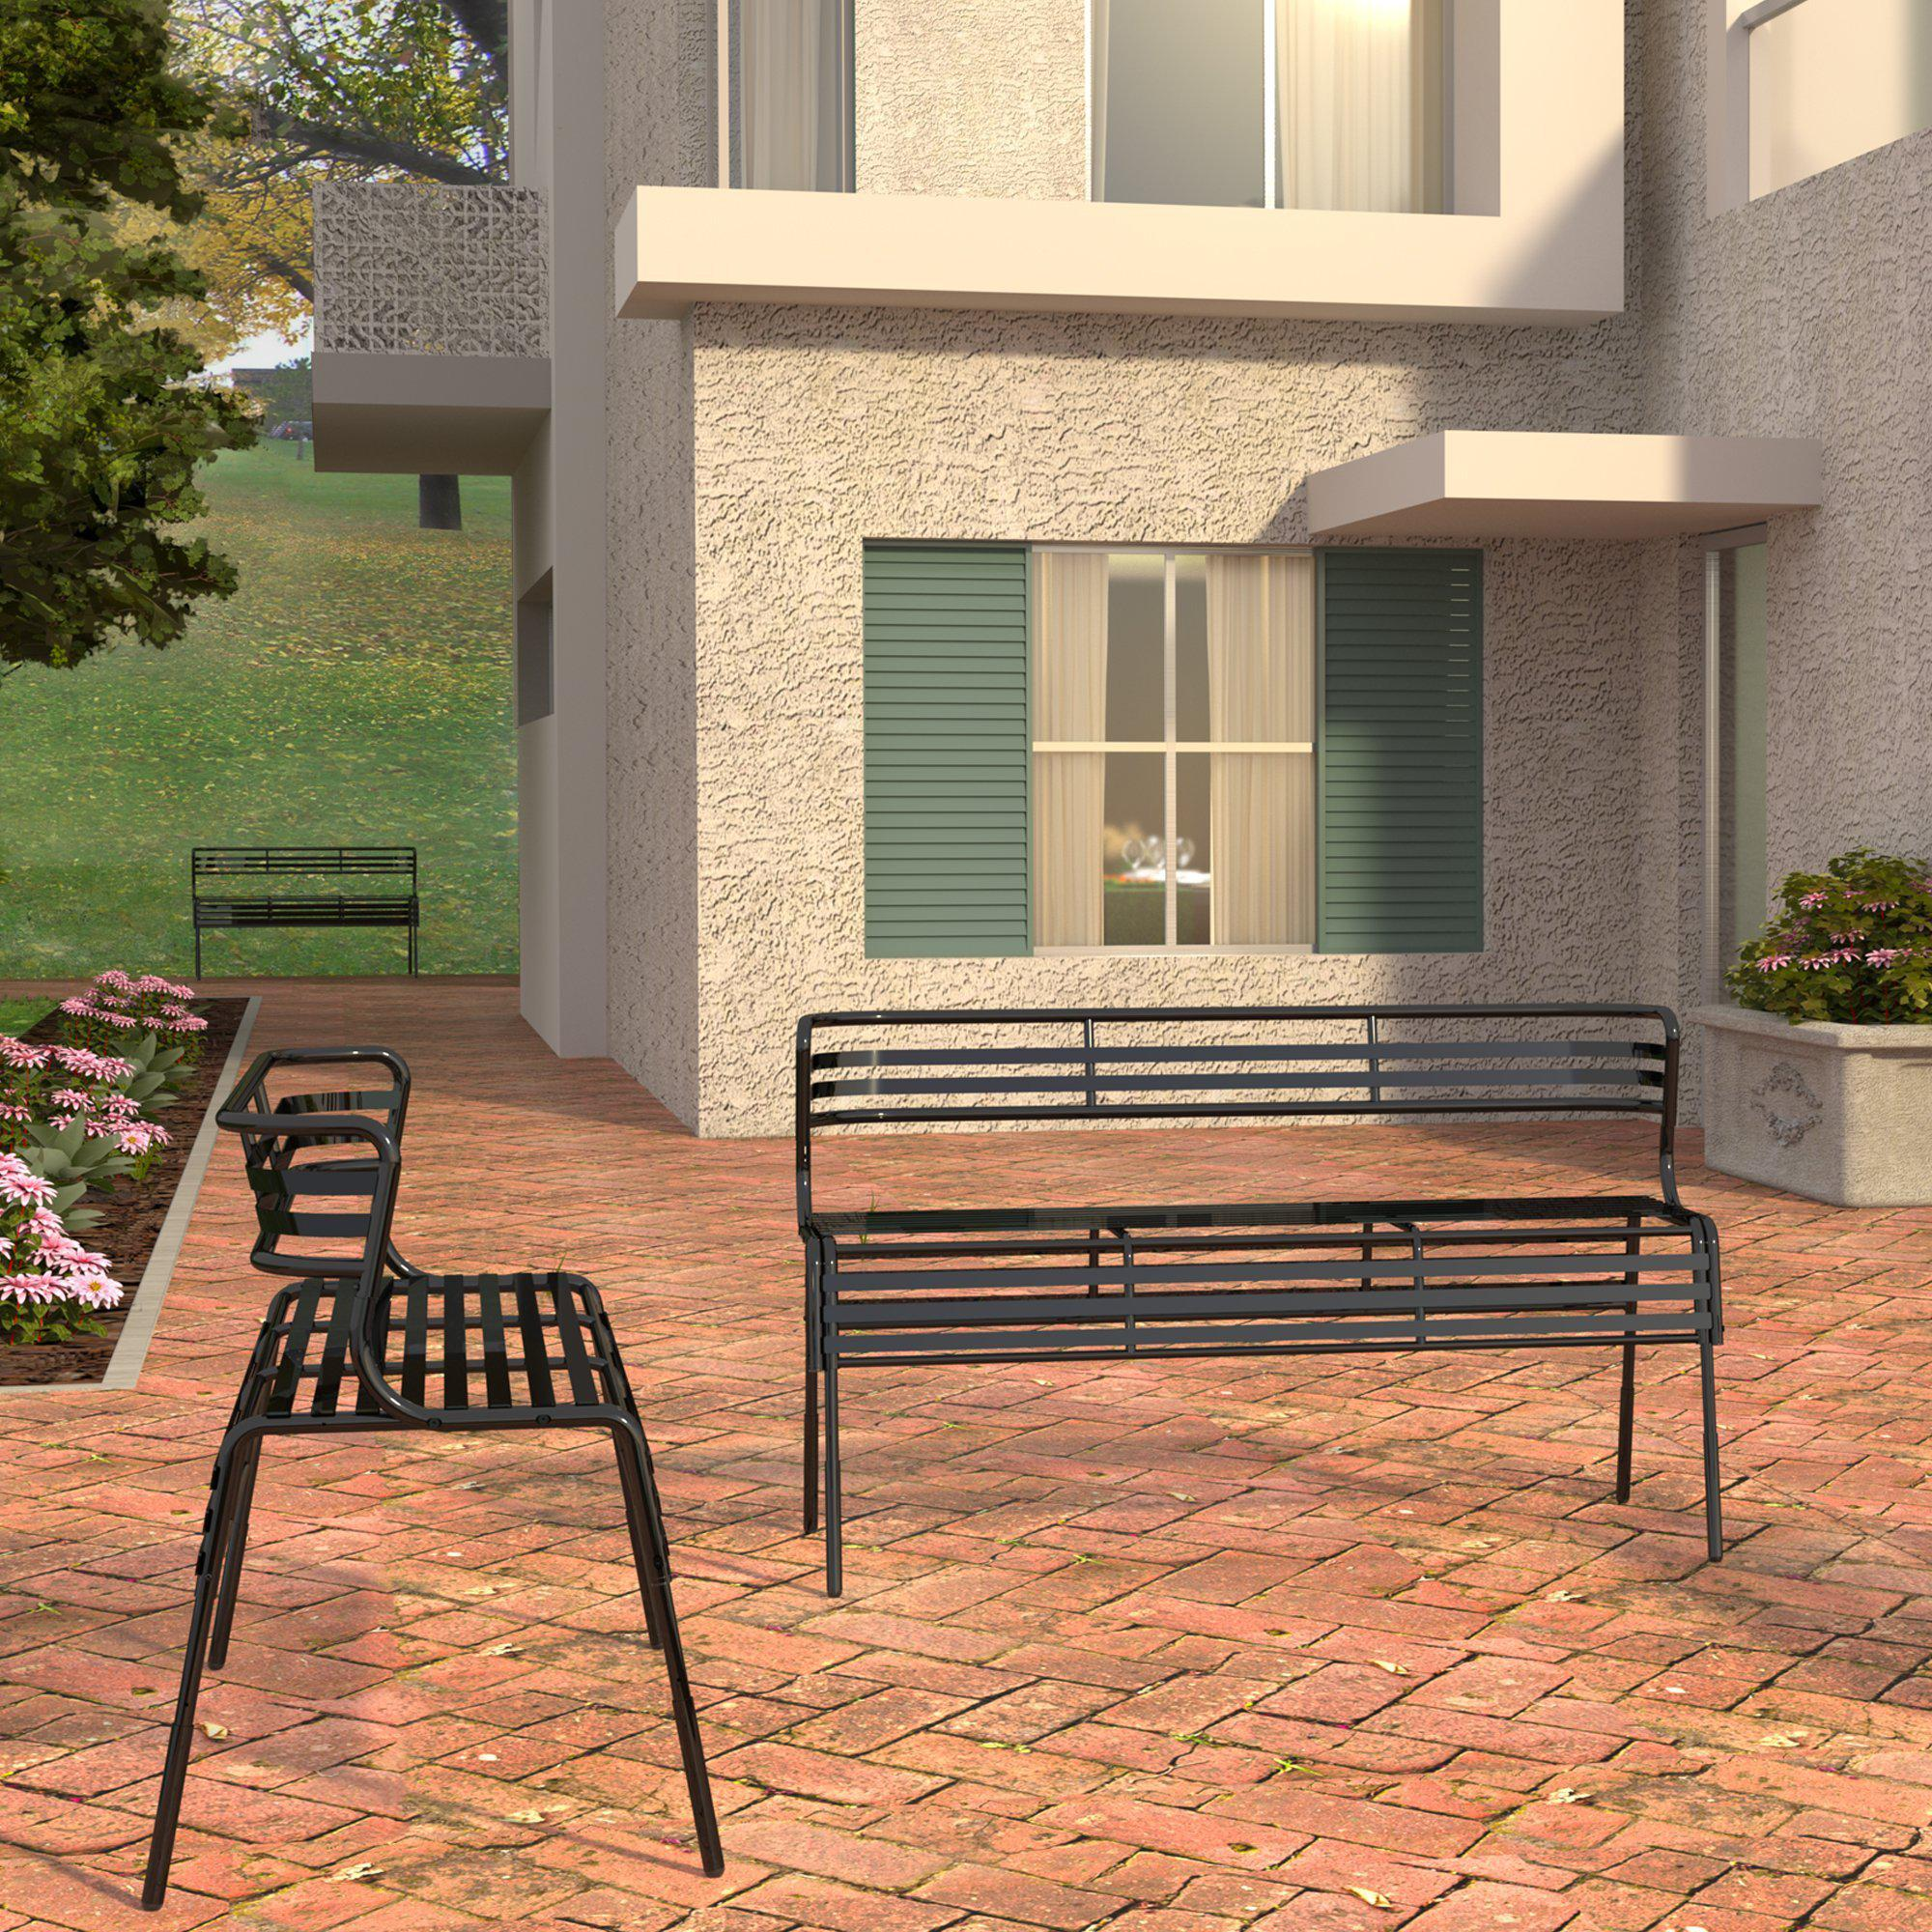 CoGo™ Steel Outdoor/Indoor Bench with Back